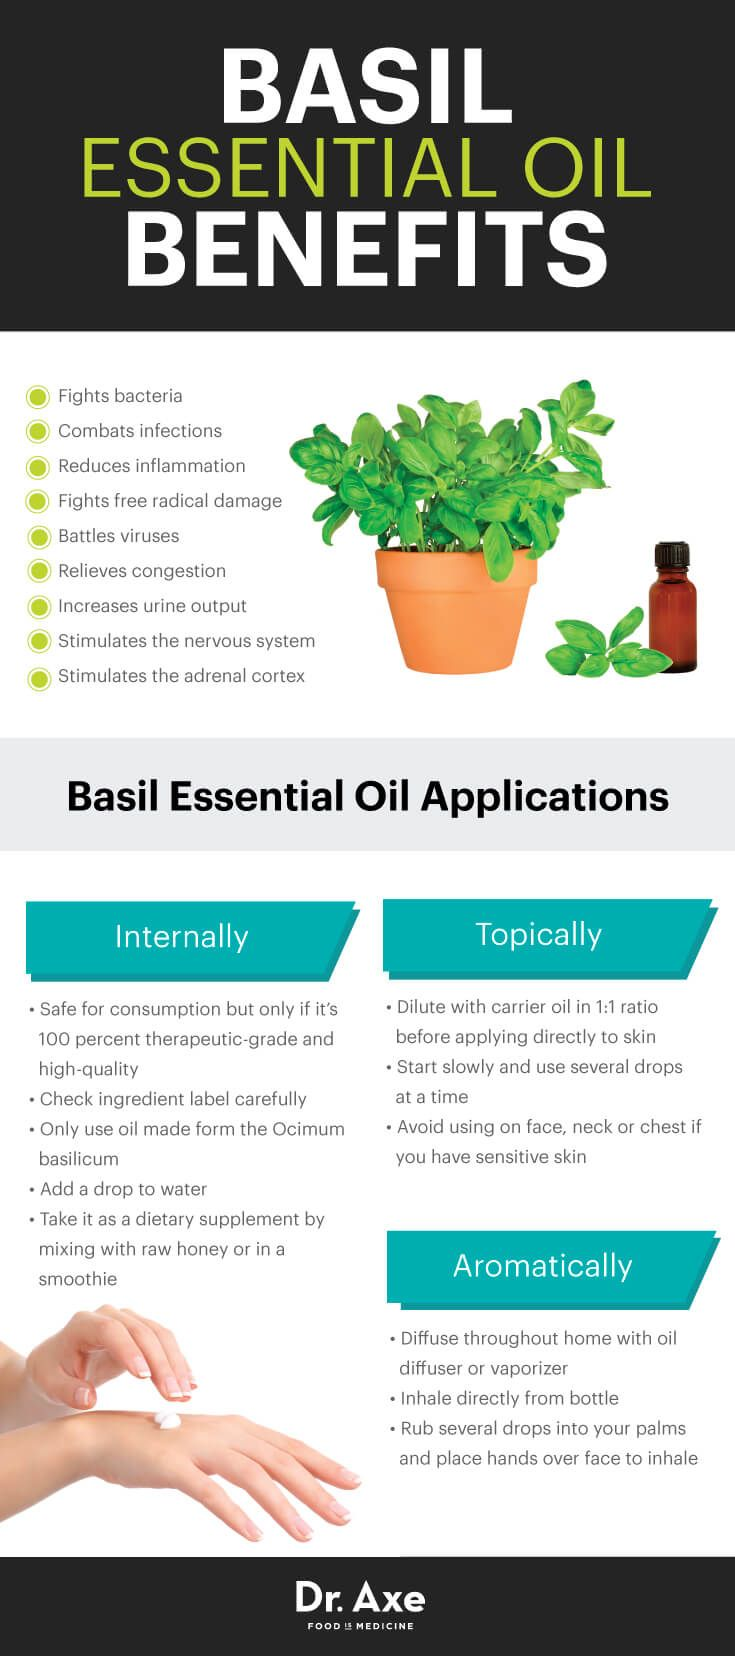 Basil Essential Oil Fights Bacteria, Colds & Bad Odor - Dr. Axe